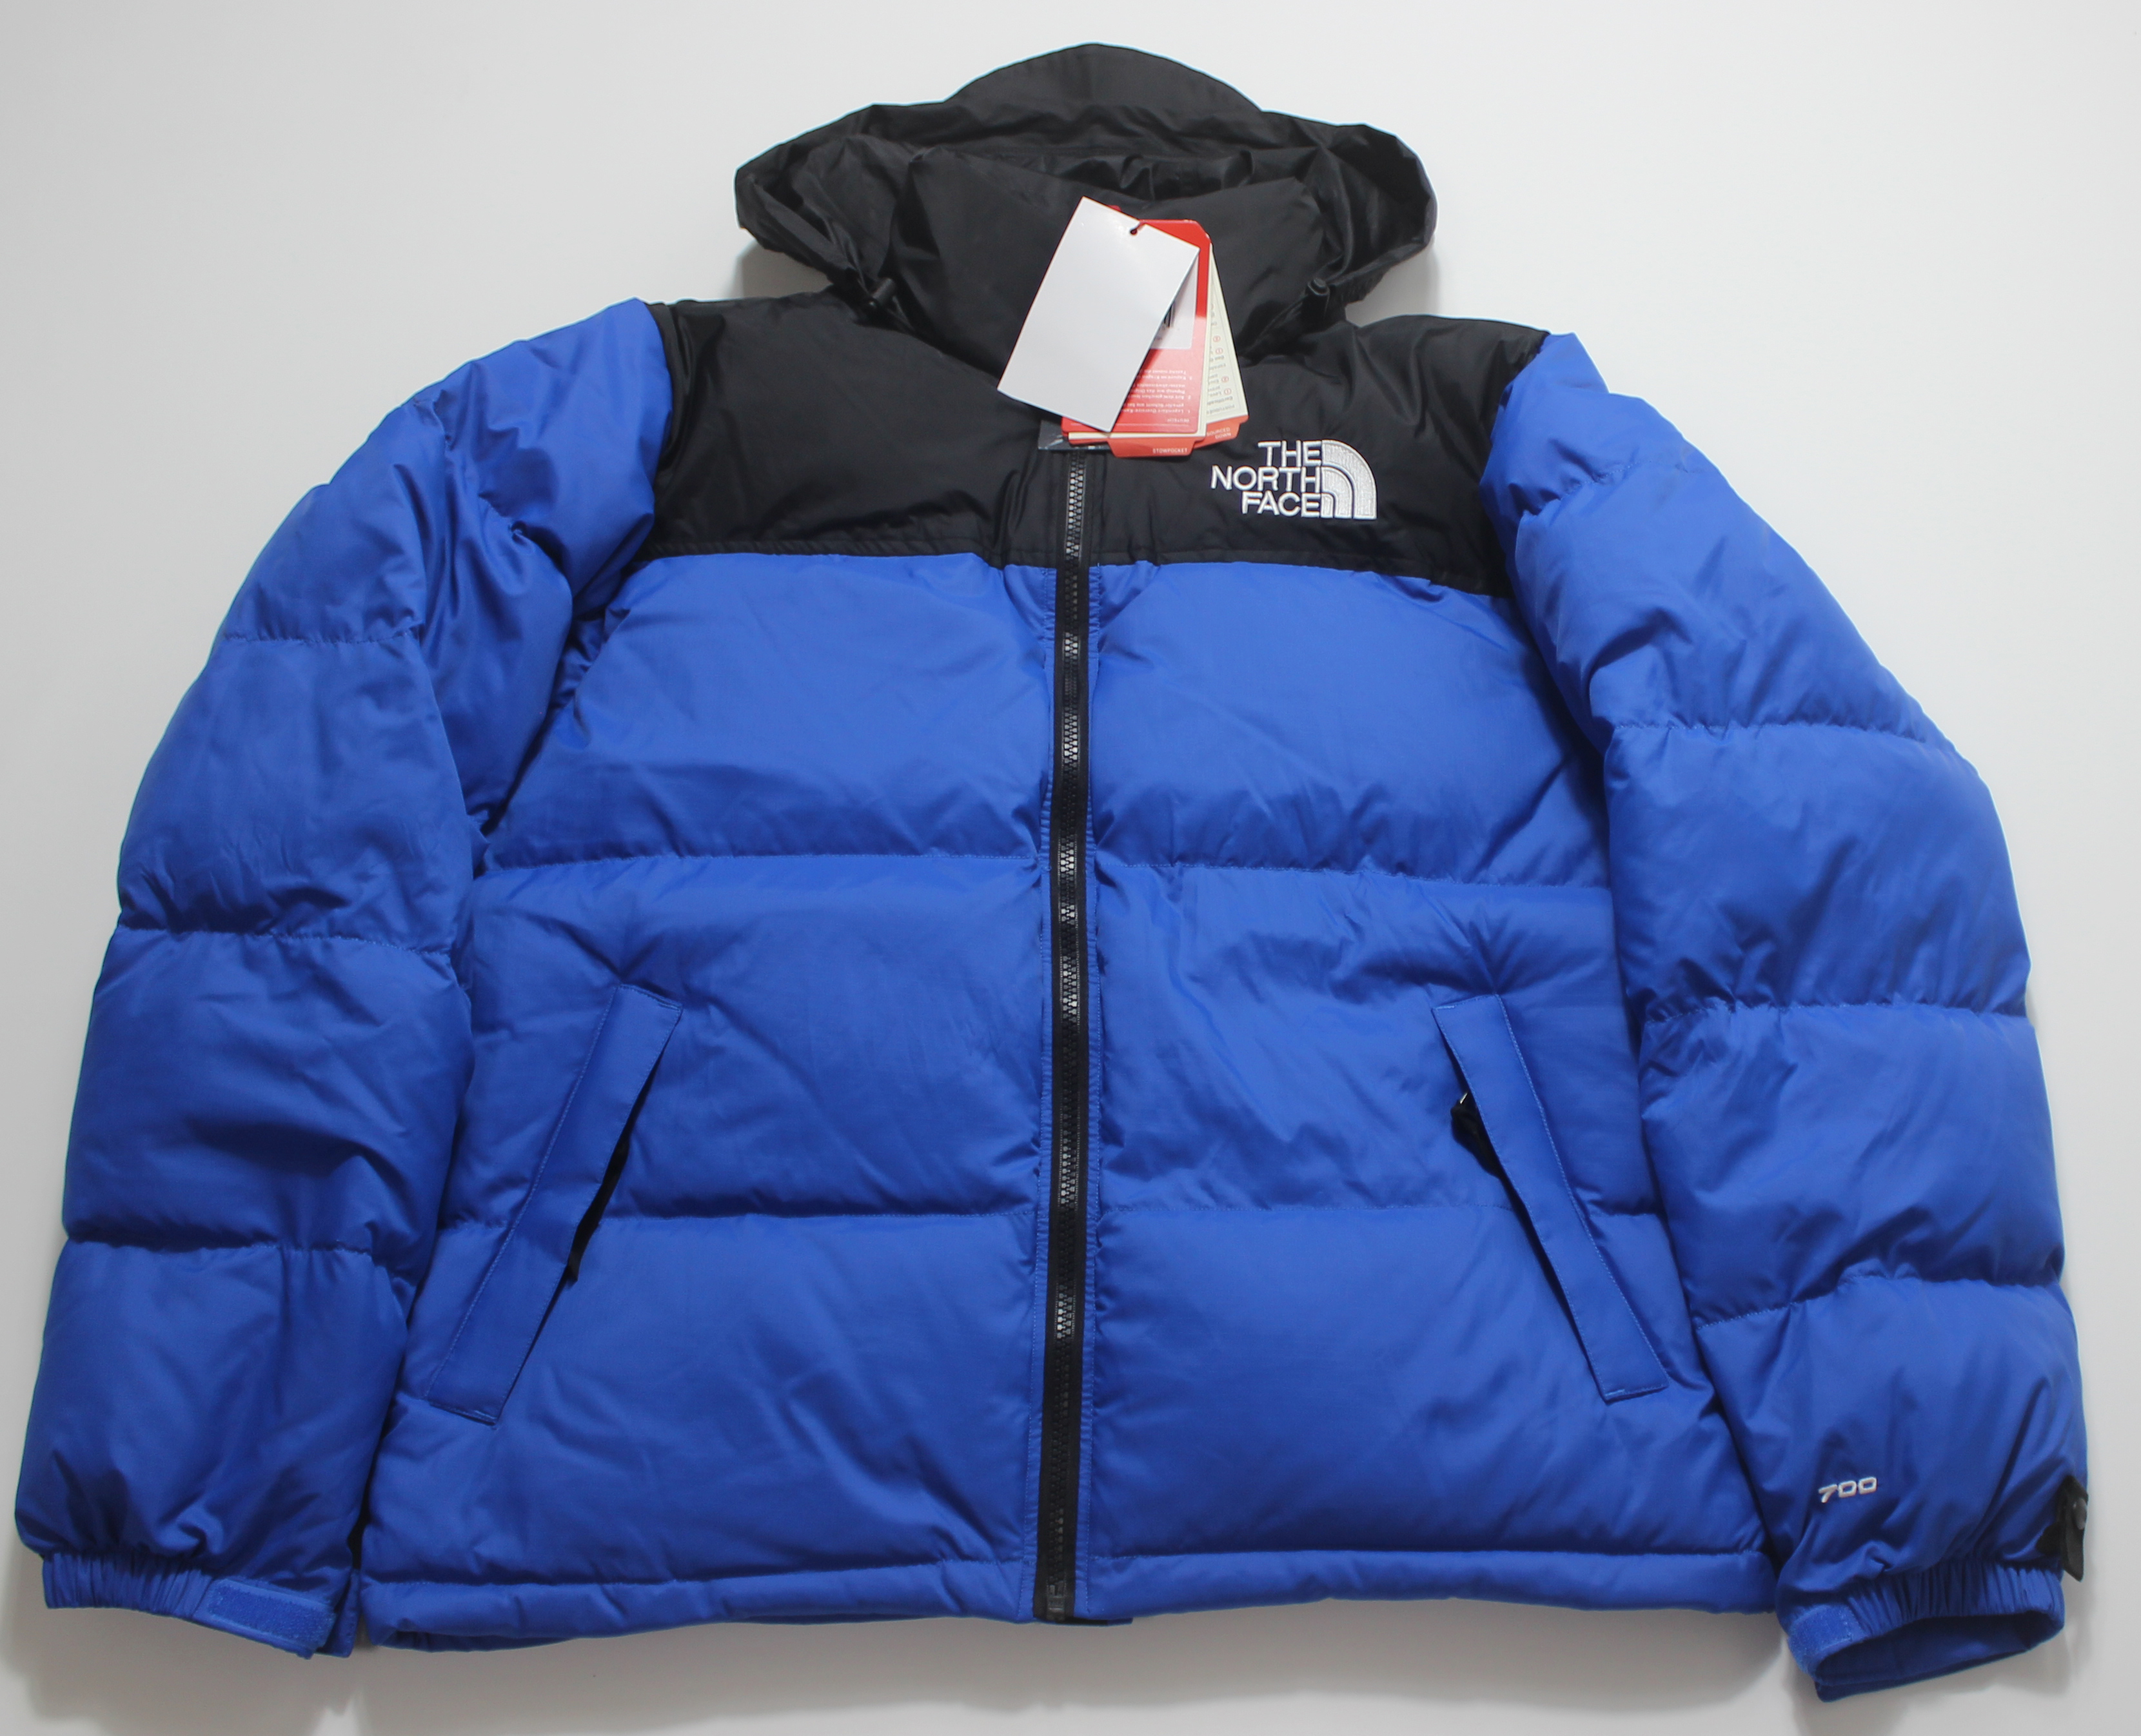 The North Face Men's Outwear 397